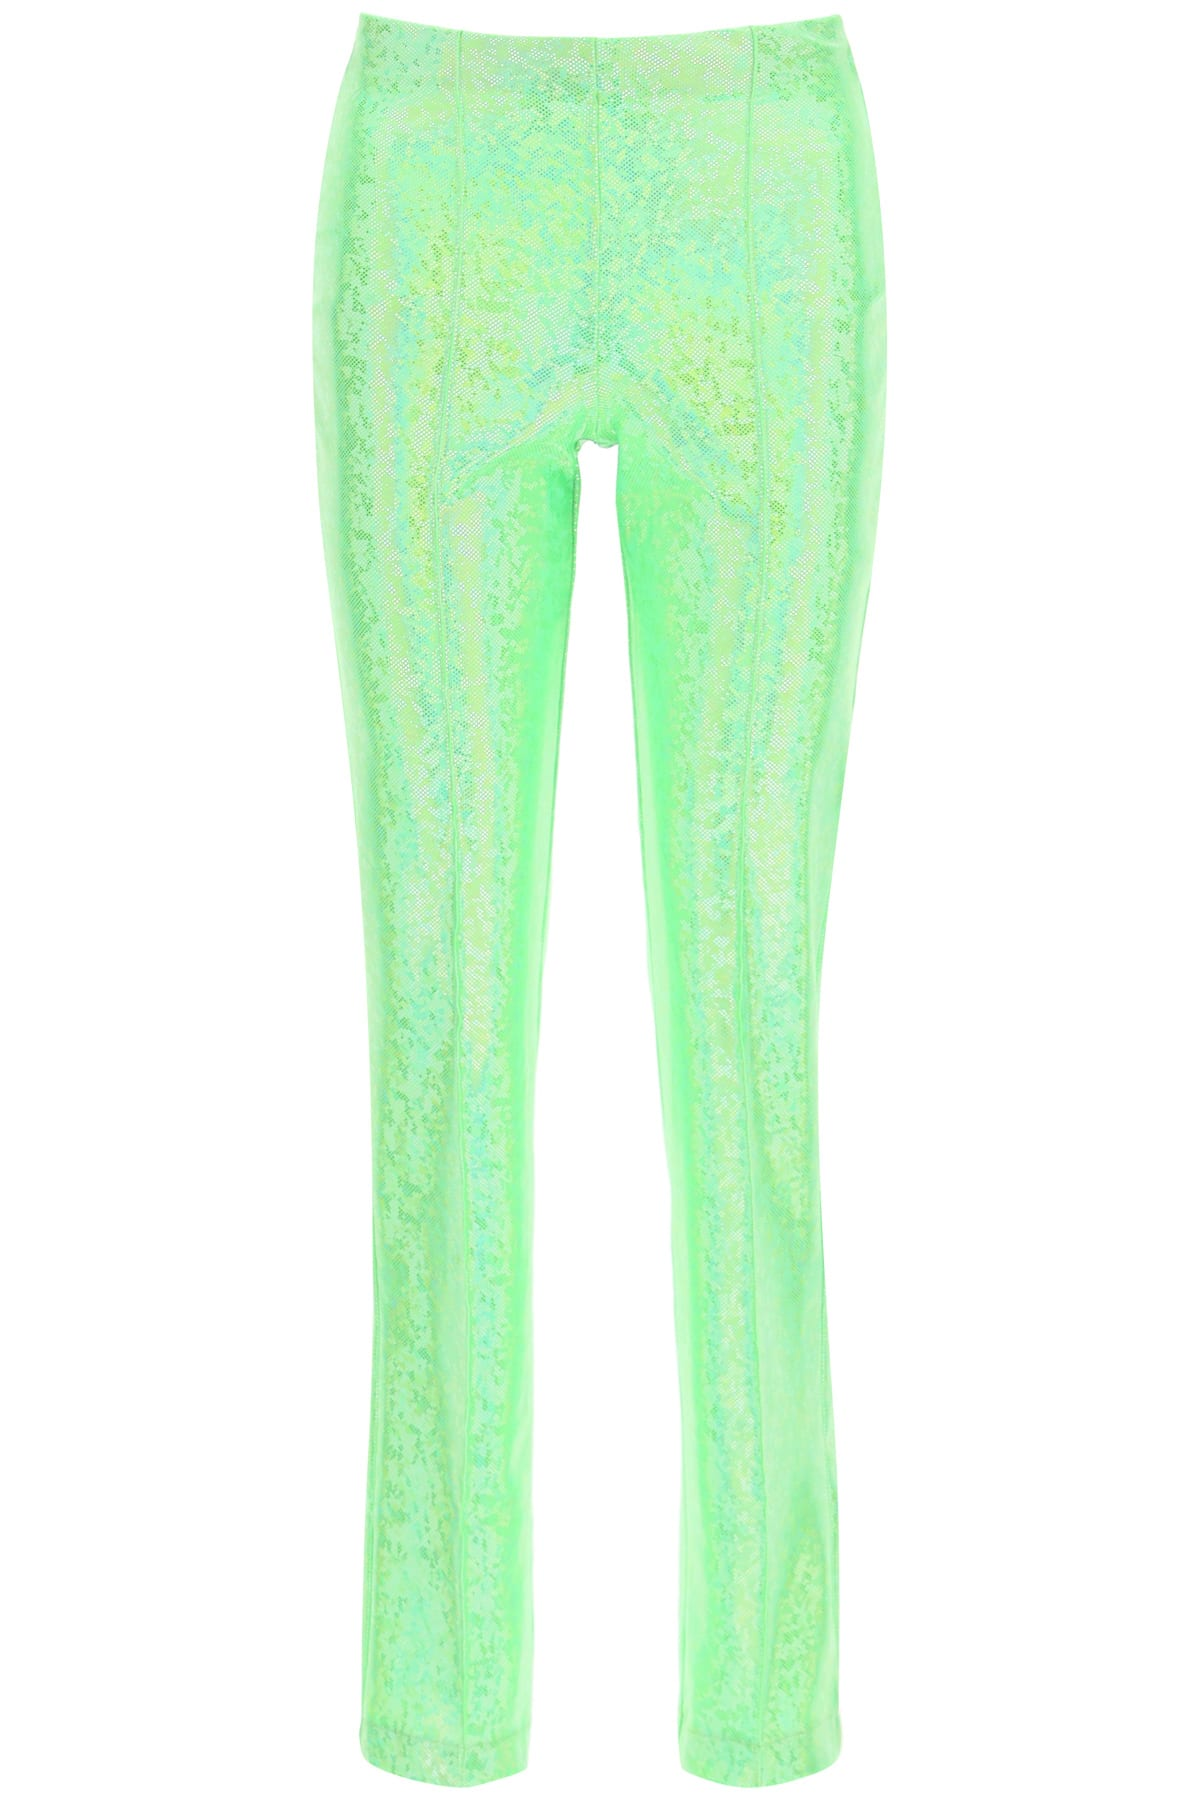 Saks Potts LISSI GREEN SHIMMER TROUSERS